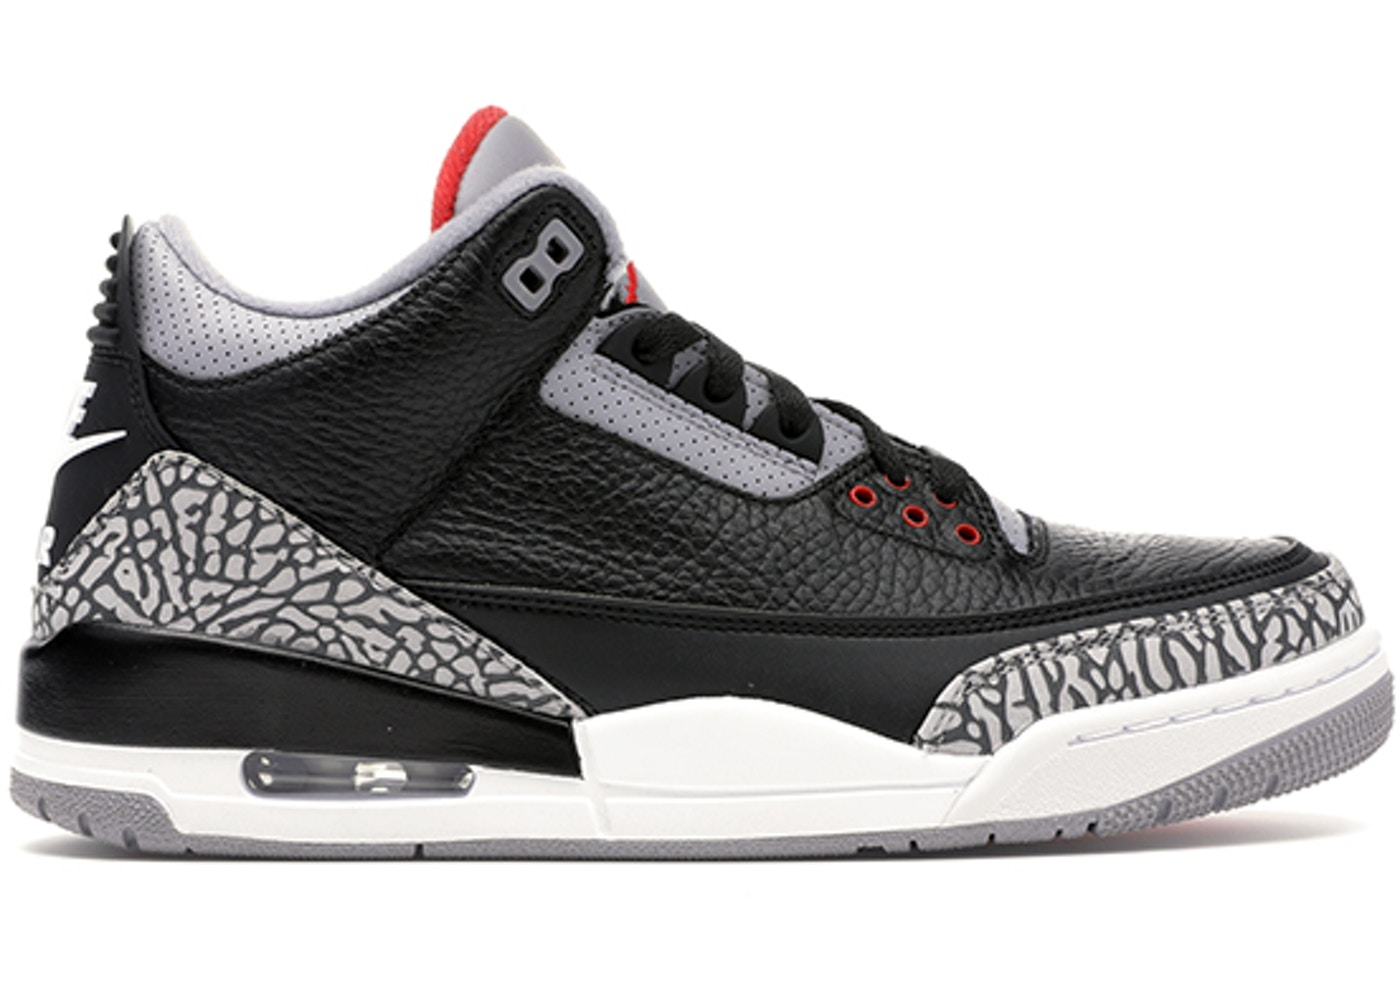 e18570dac6b Jordan 3 Retro Black Cement (2018) - 854262-001